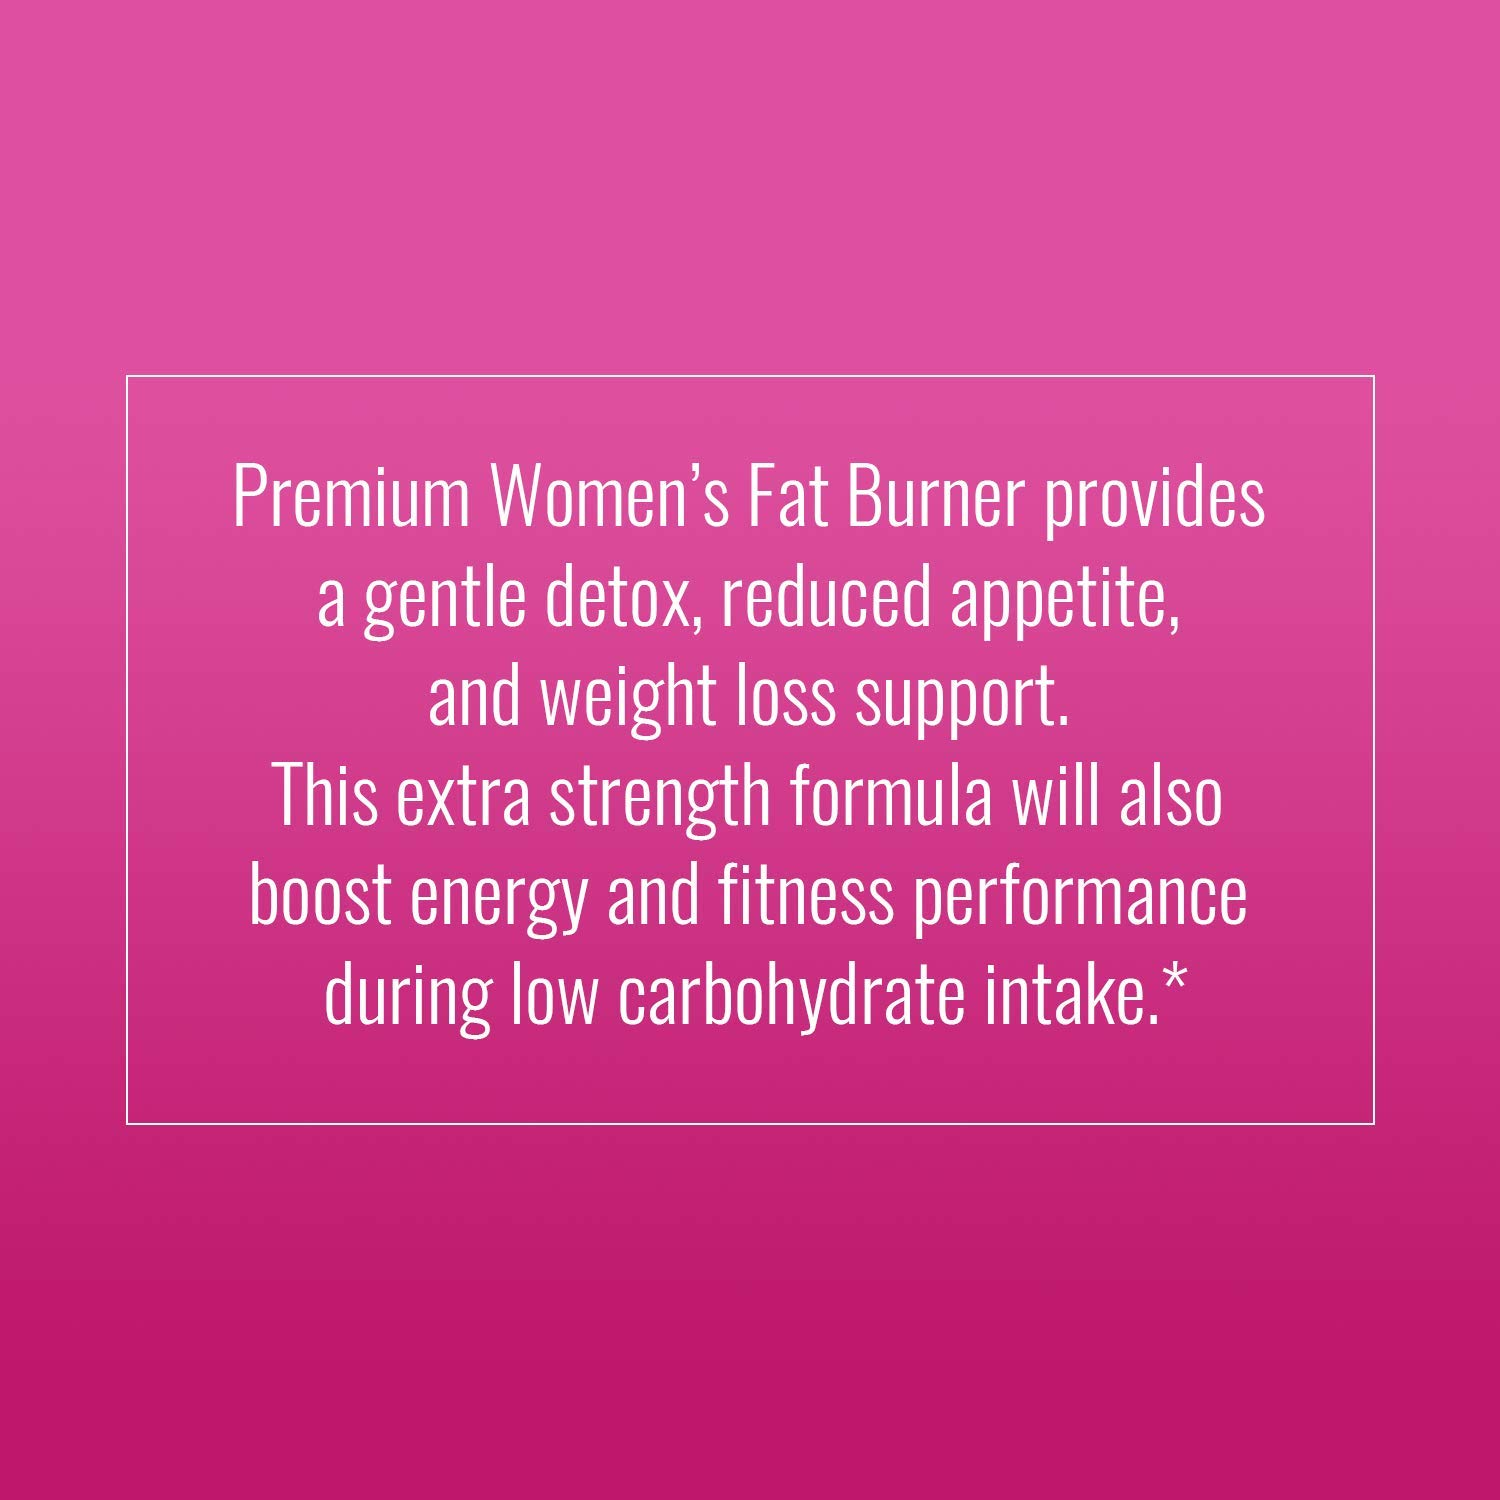 Nobi Nutrition Premium Vegan Fat Burner for Women - Weight Loss Supplement, Appetite Suppressant and Metabolism Booster - Thermogenic Diet Pills for Women - 60 Capsules by Nobi Nutrition (Image #7)